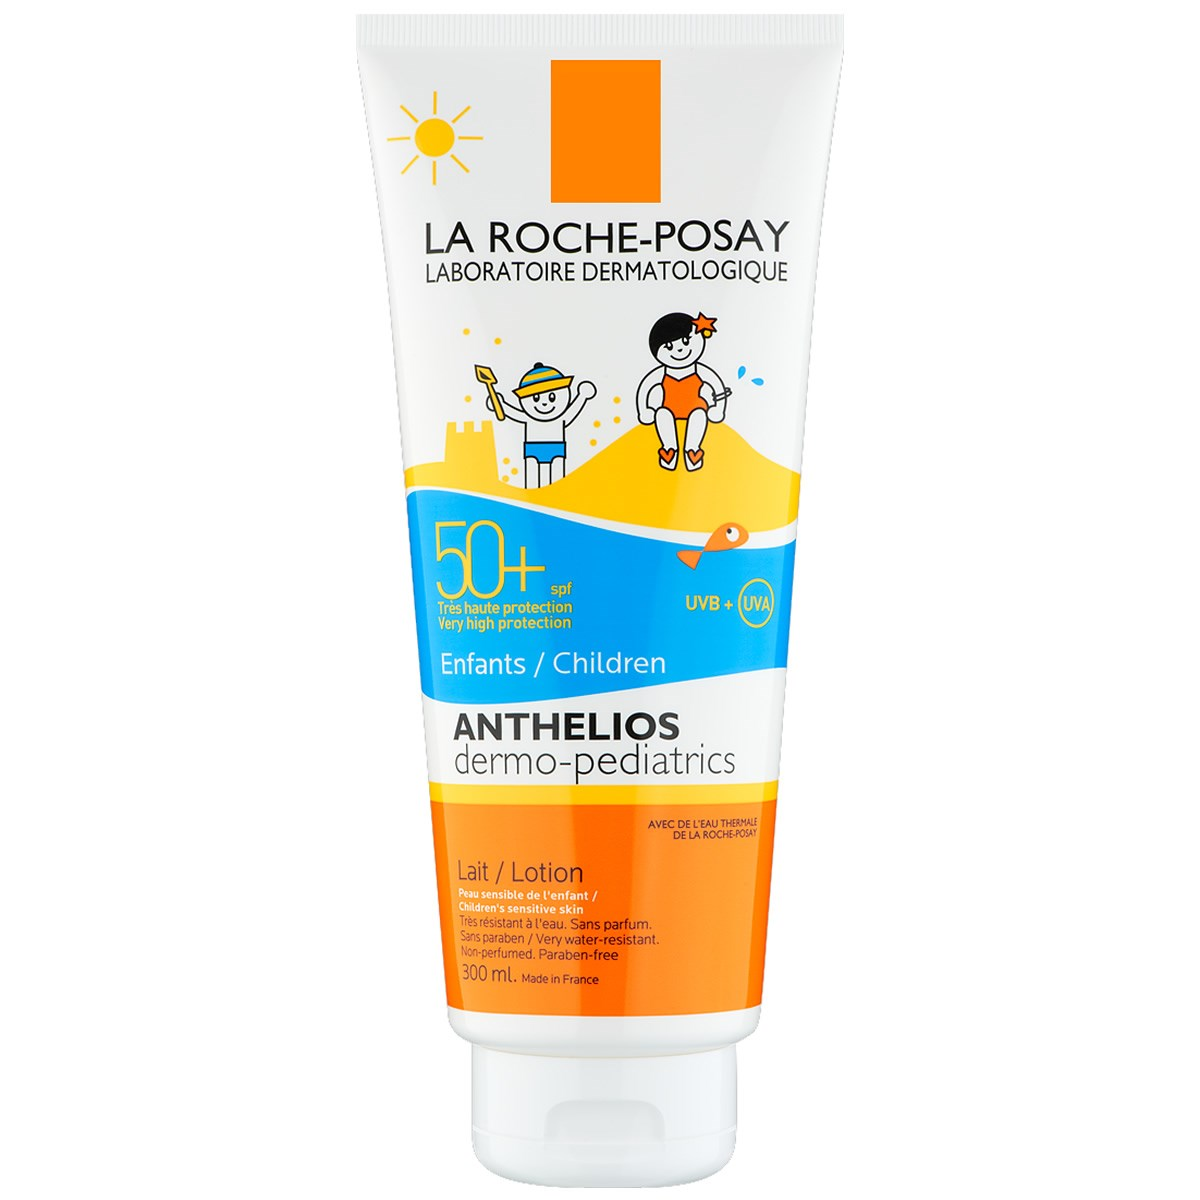 La Roche-Posay Anthelios Dermo-Kids Smooth Lotion SPF50+ 300ml